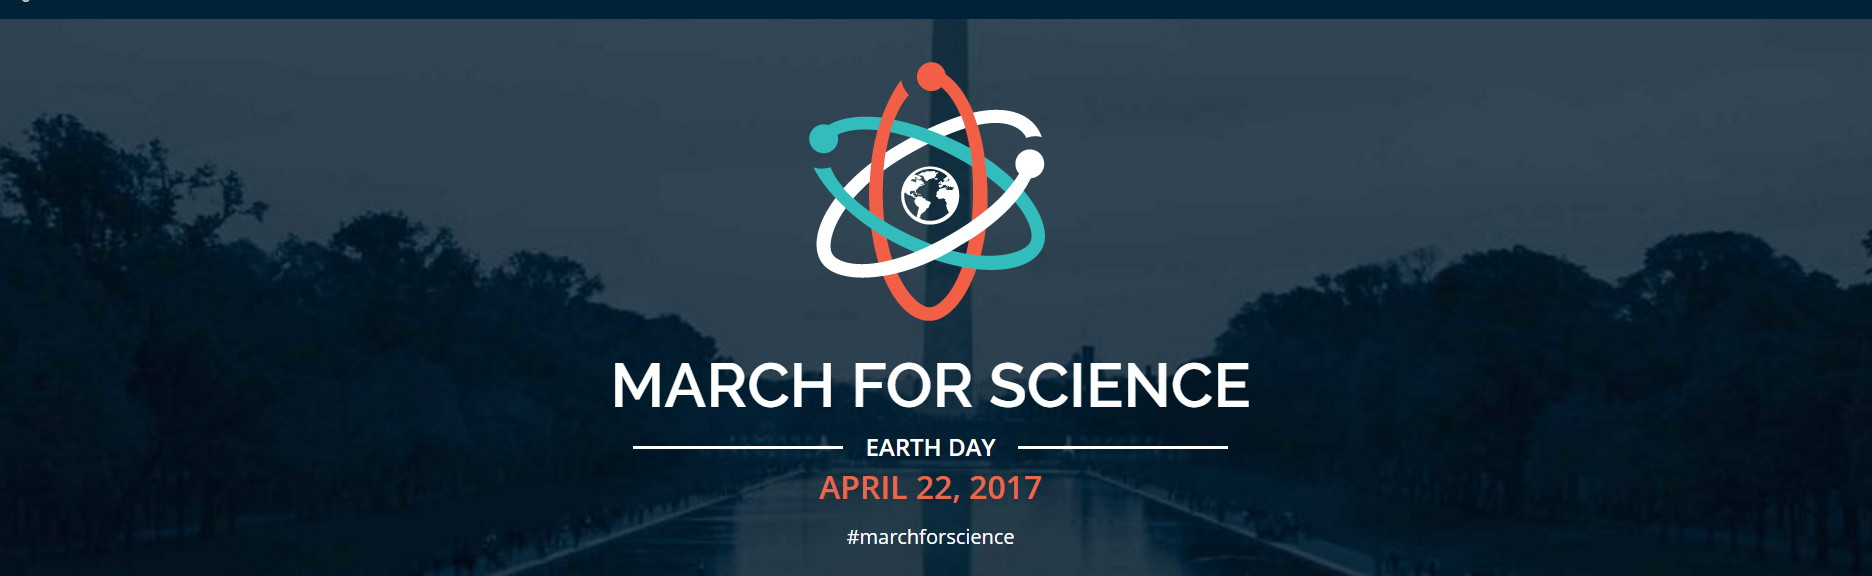 March for Science web page banner